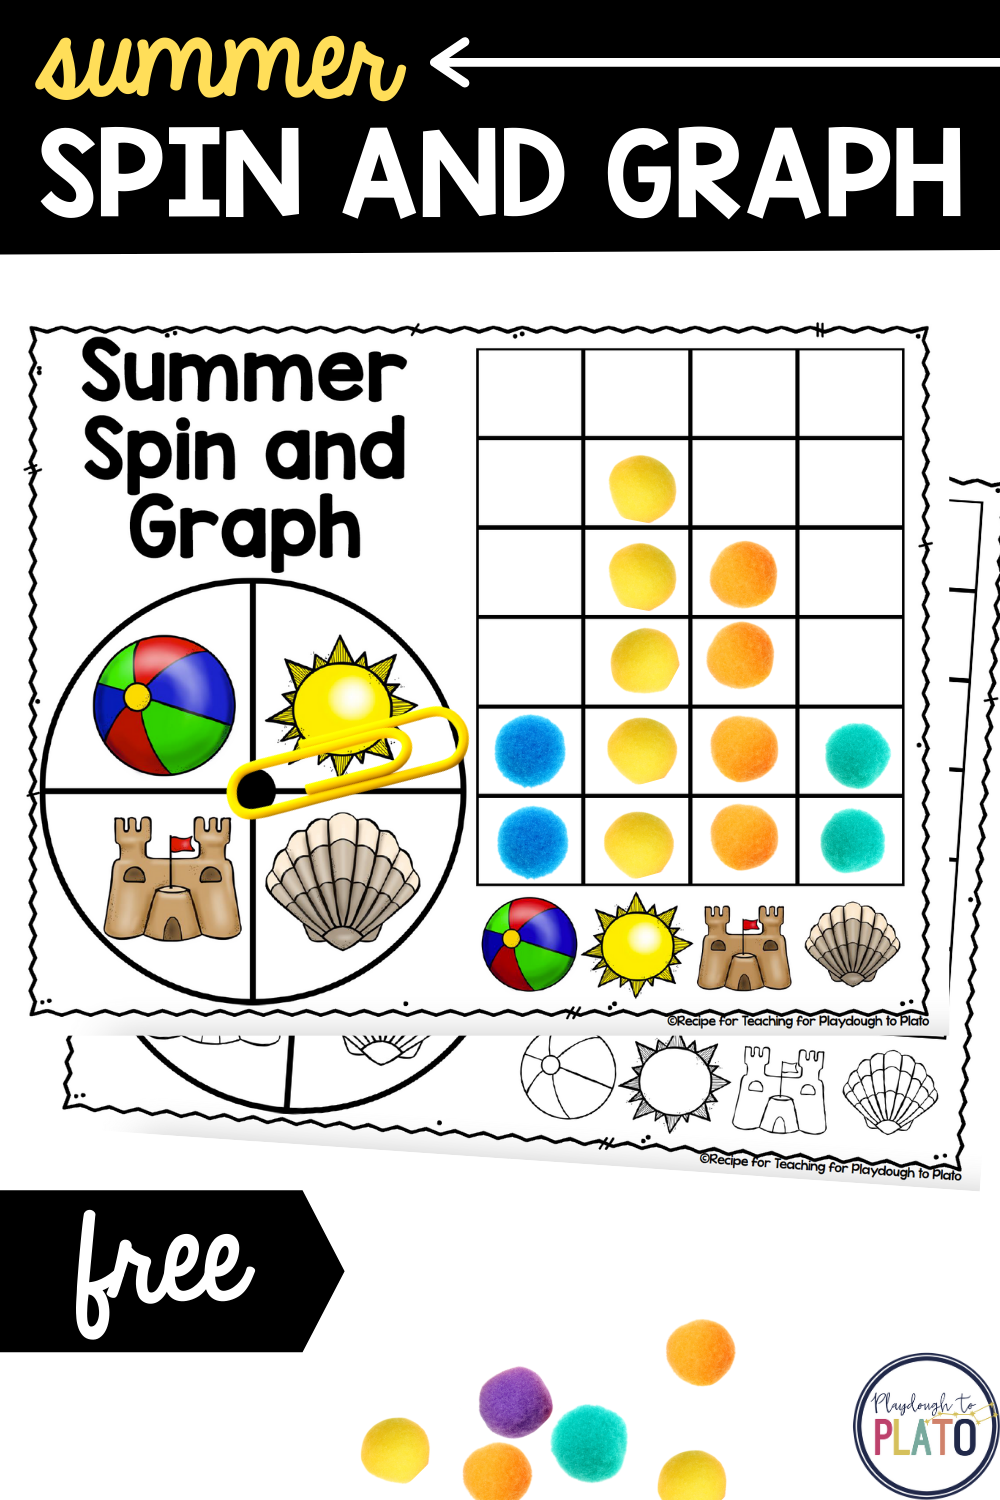 Summer Spin and Graph